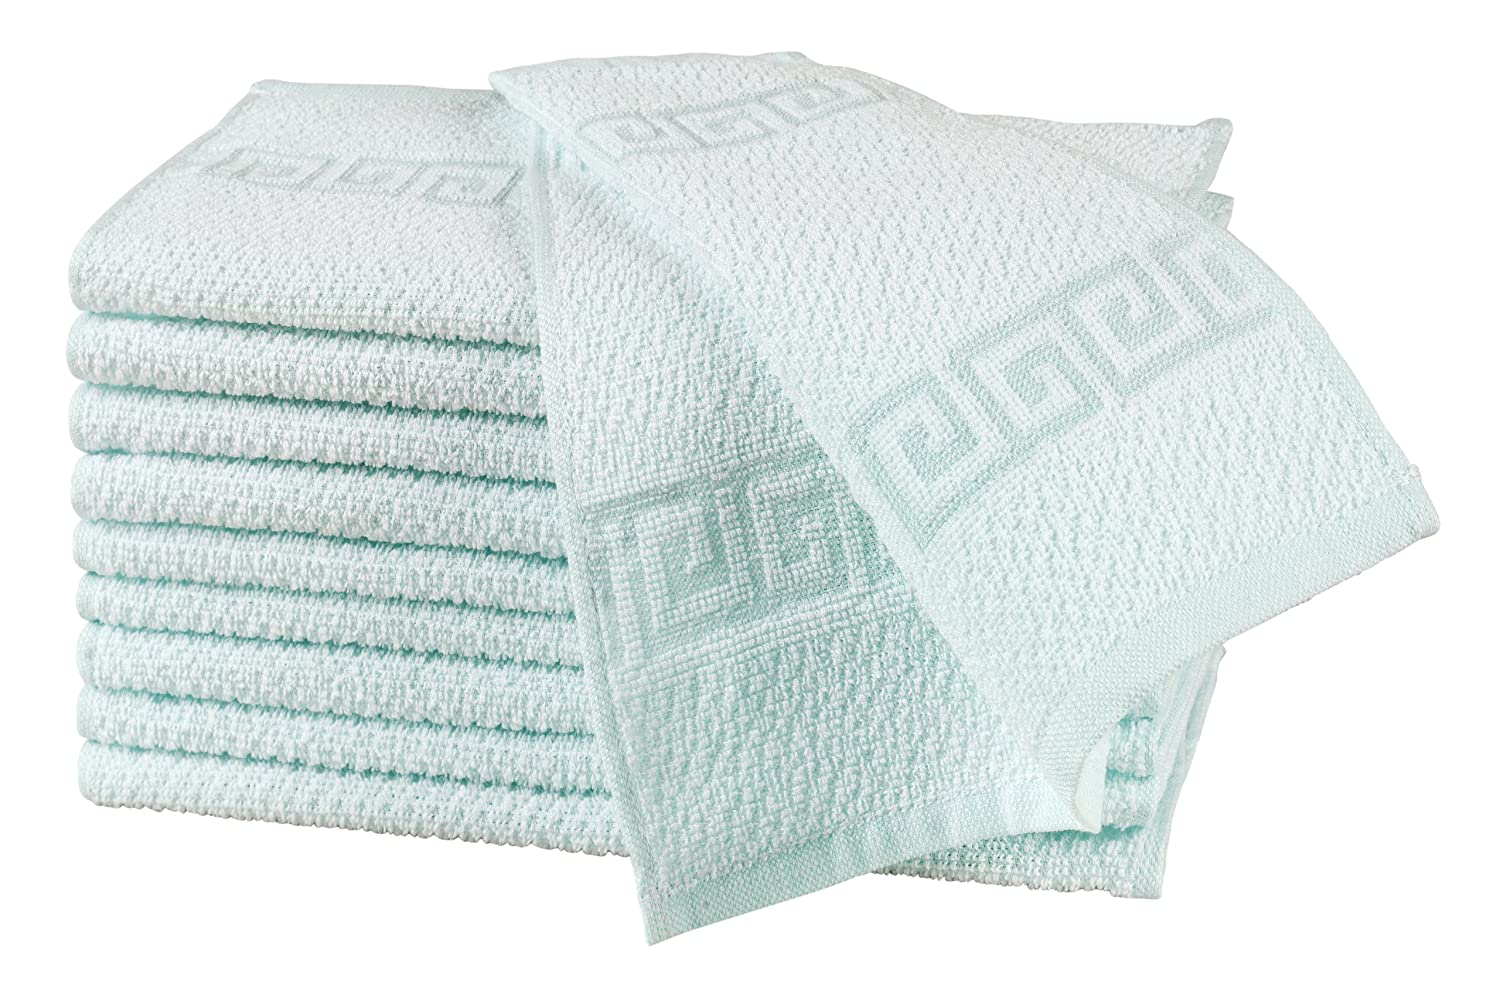 Fleuresse 3135 Fb. 4 Hand Towel 50 x 100 cm Pack of 5 Rose Fleuresse GmbH Frottier 3135 Fb. 4